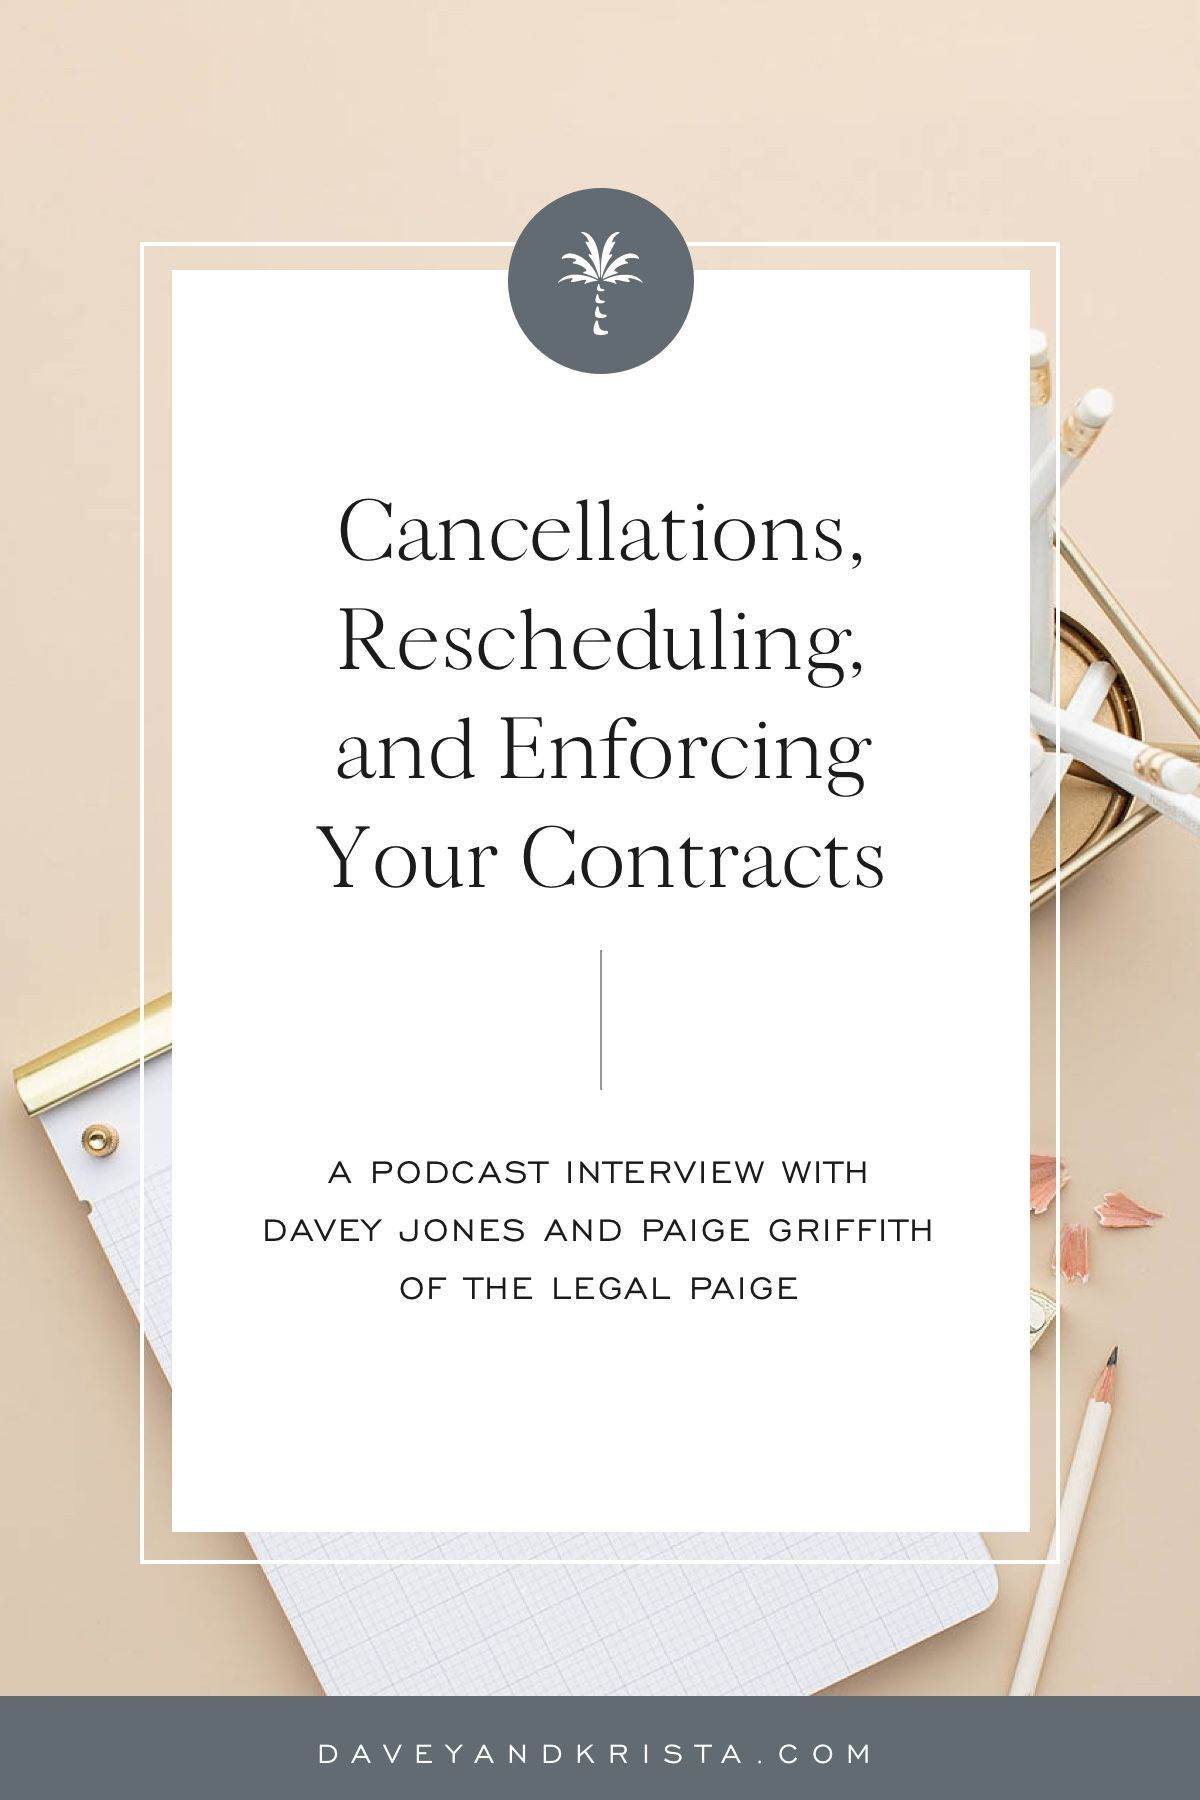 Cancellations, Rescheduling, and Enforcing Your Contracts   Davey & Krista   Have you reviewed your contract recently? Paige, of The Legal Paige, shares how wedding vendors can enforce their contracts in unprecedented times. She has a contract template bundle for those small business owner's who need to cancel or reschedule their weddings and events. #creativeentrepreneur #weddingvendorcontracts #photographycontracts